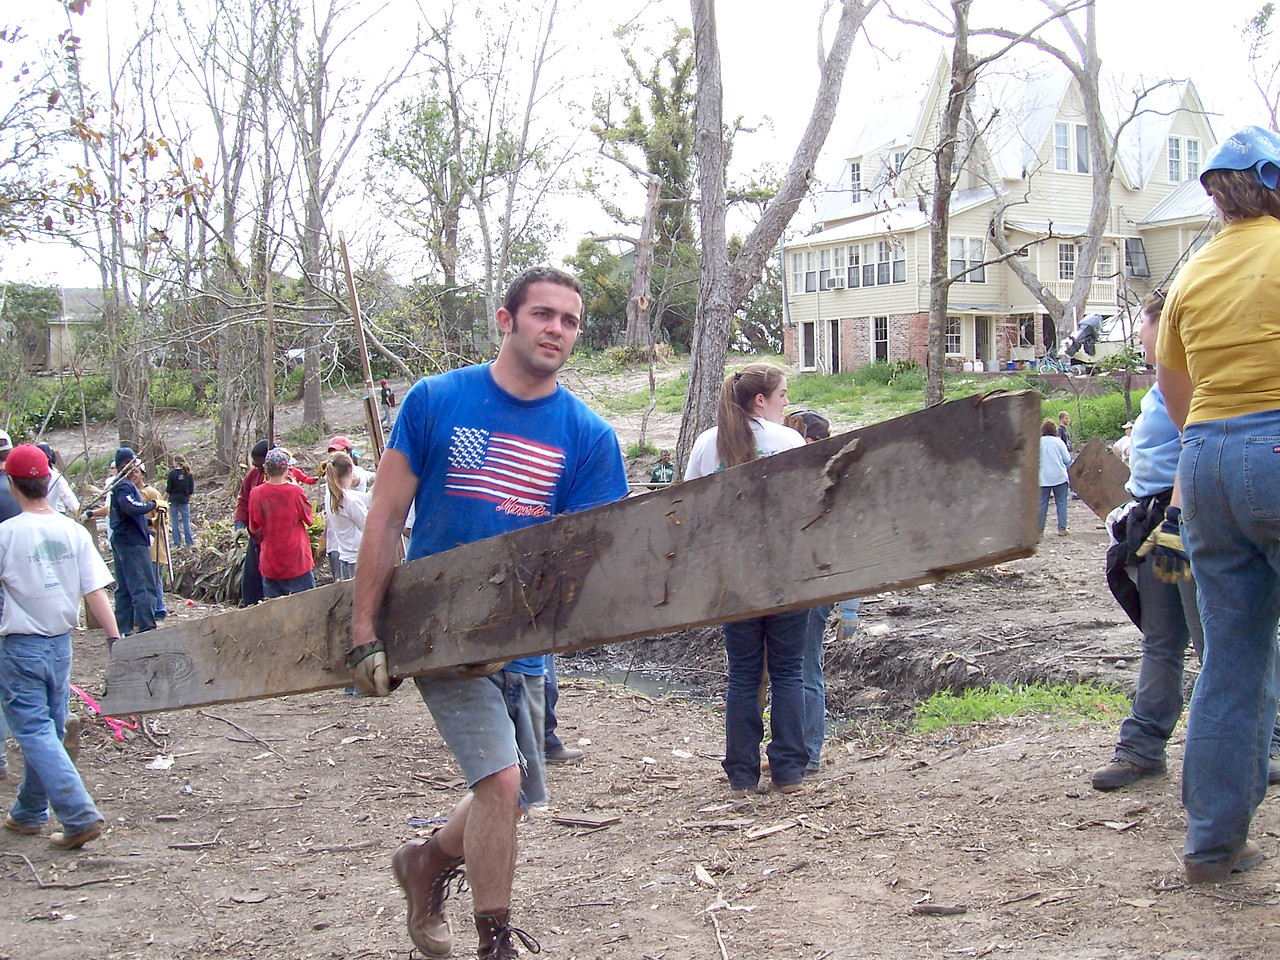 A university student spends his spring break clearing up debris left behind from Hurricane Katrina. He is participating in 'What a Relief', an opportunity for students and others in campus communities to help survivors of the 2005 hurricane season recover.